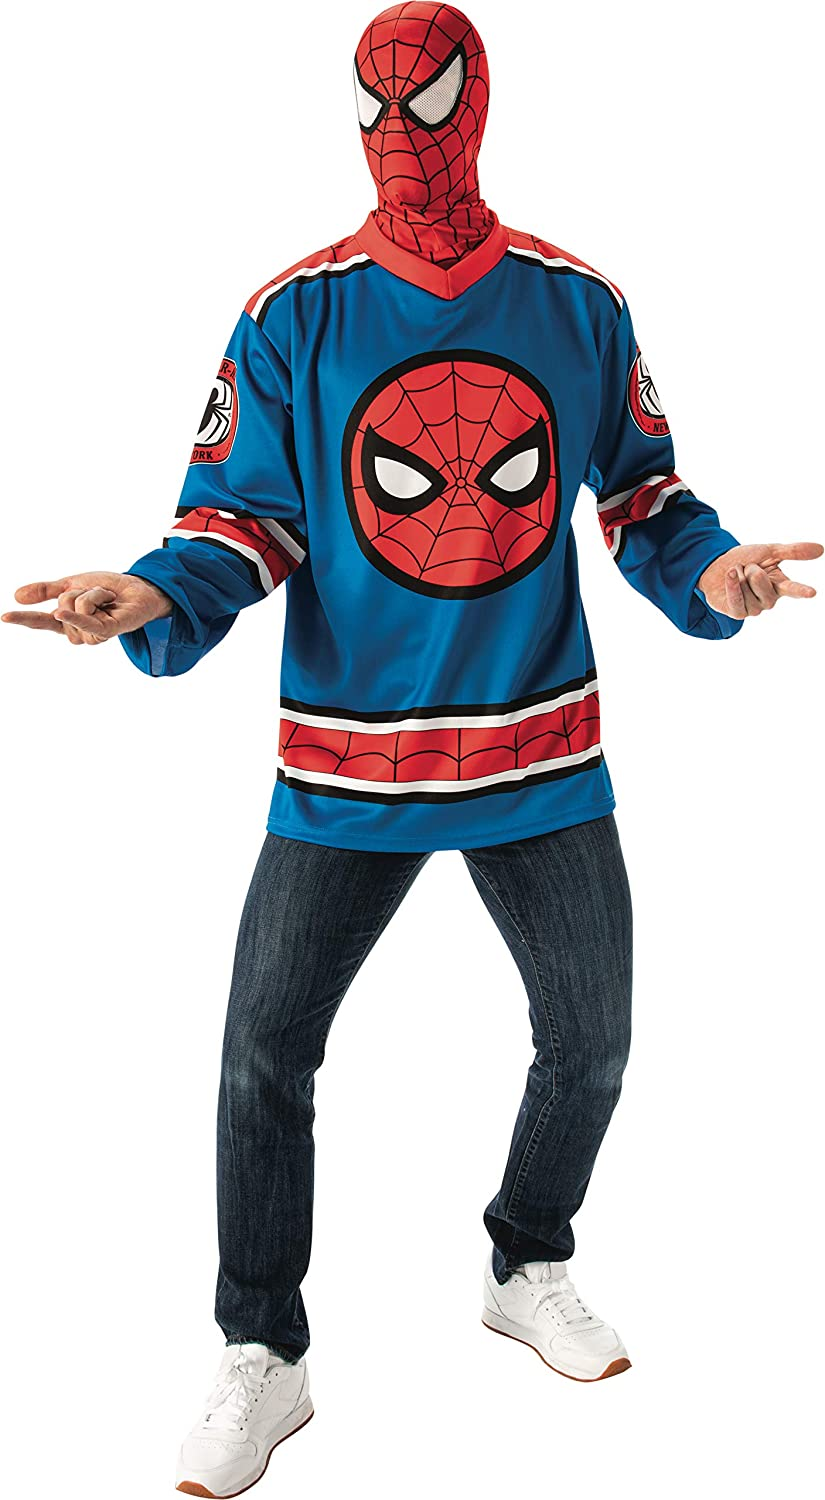 Rubie's unisex-adult Marvel Universe Outstanding 5 ☆ popular Spider-man Jersey Costume T